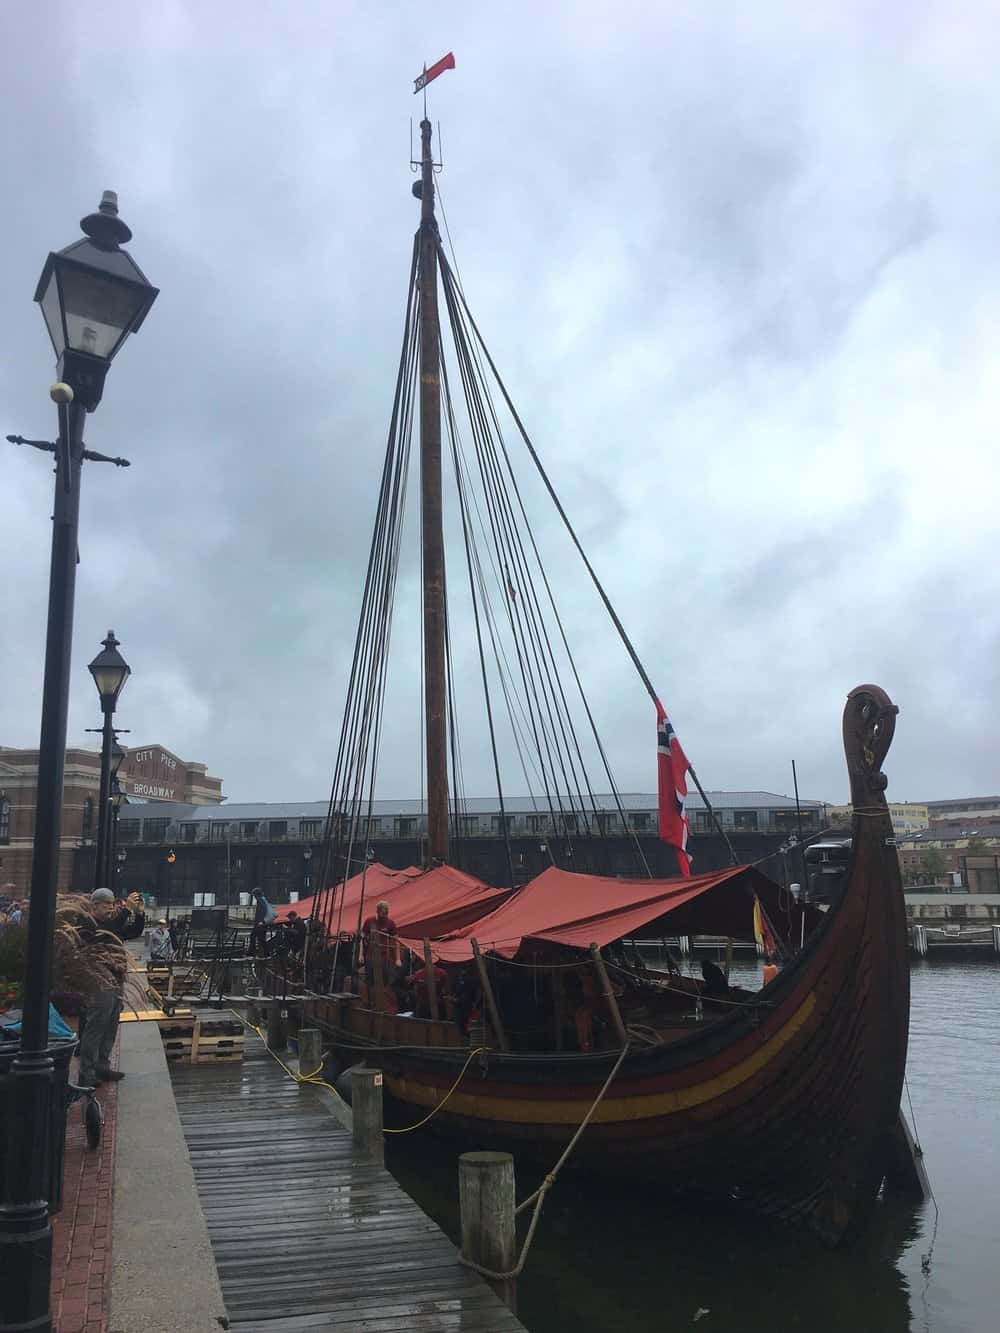 Draken's East Coast tour recently stopped in Fells Point.